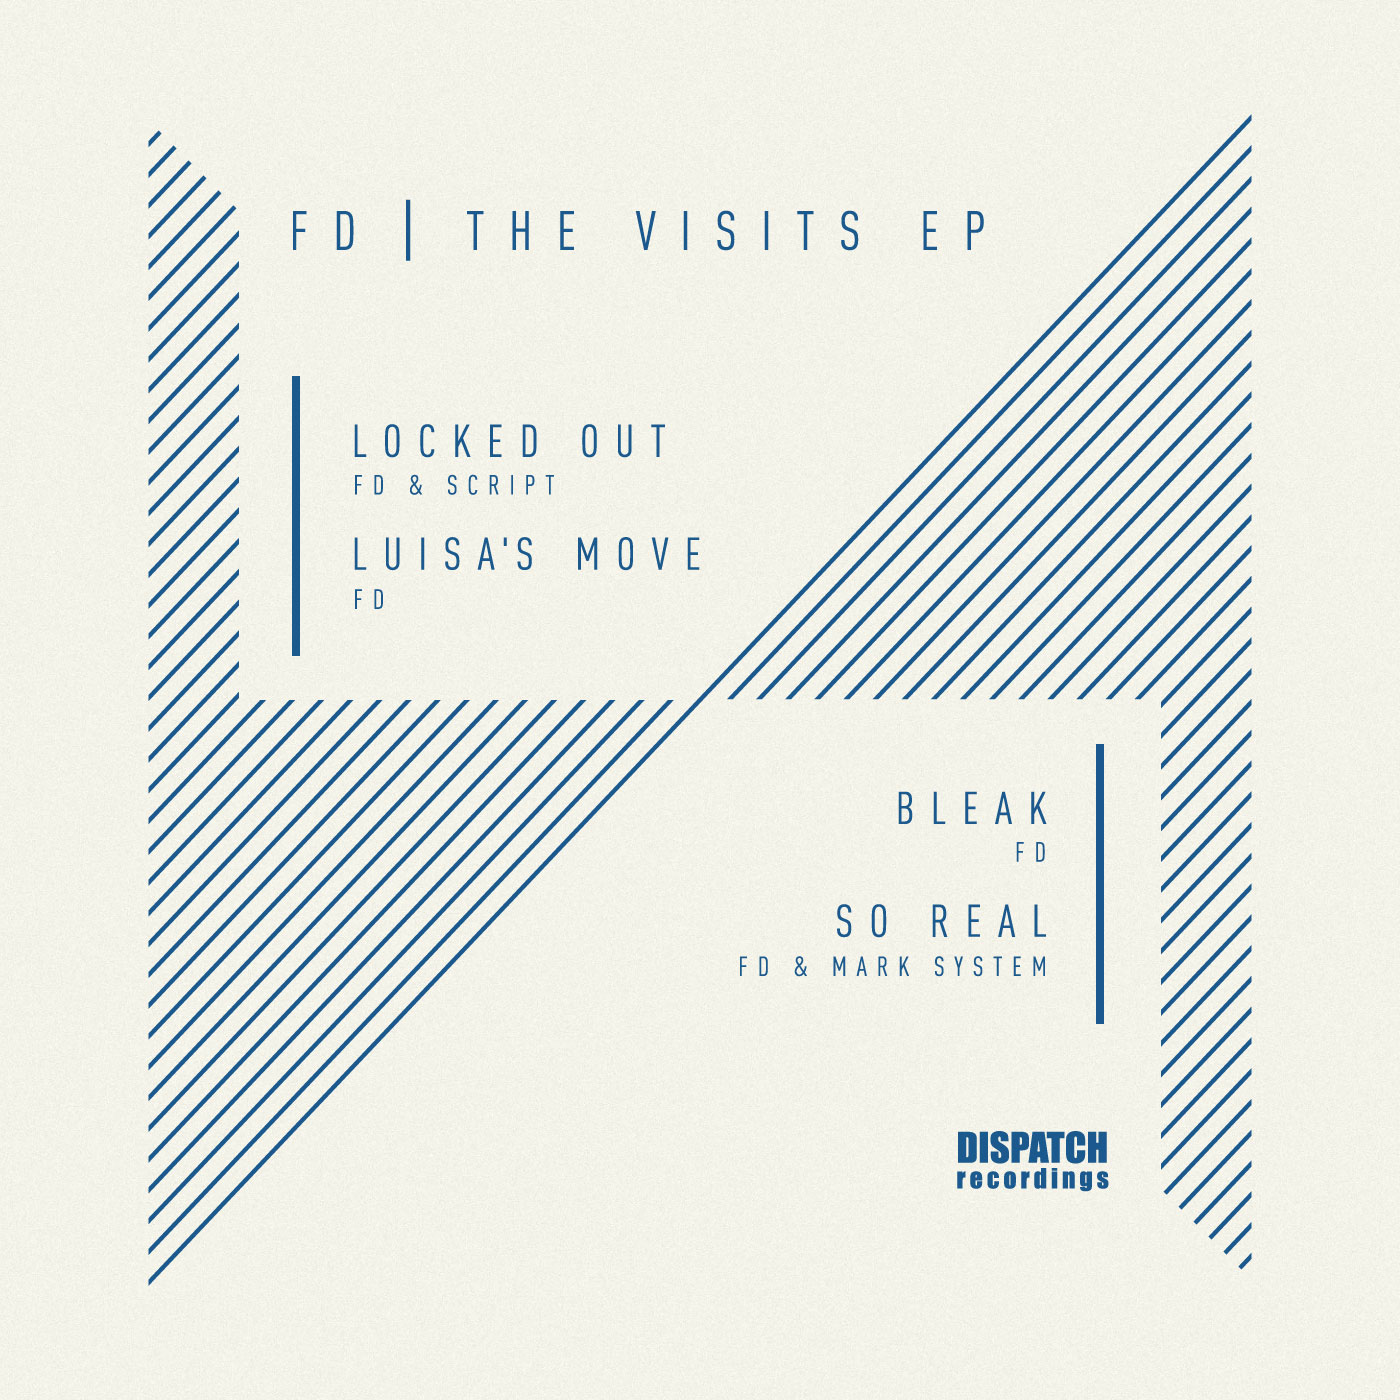 FD/THE VISITS EP D12""